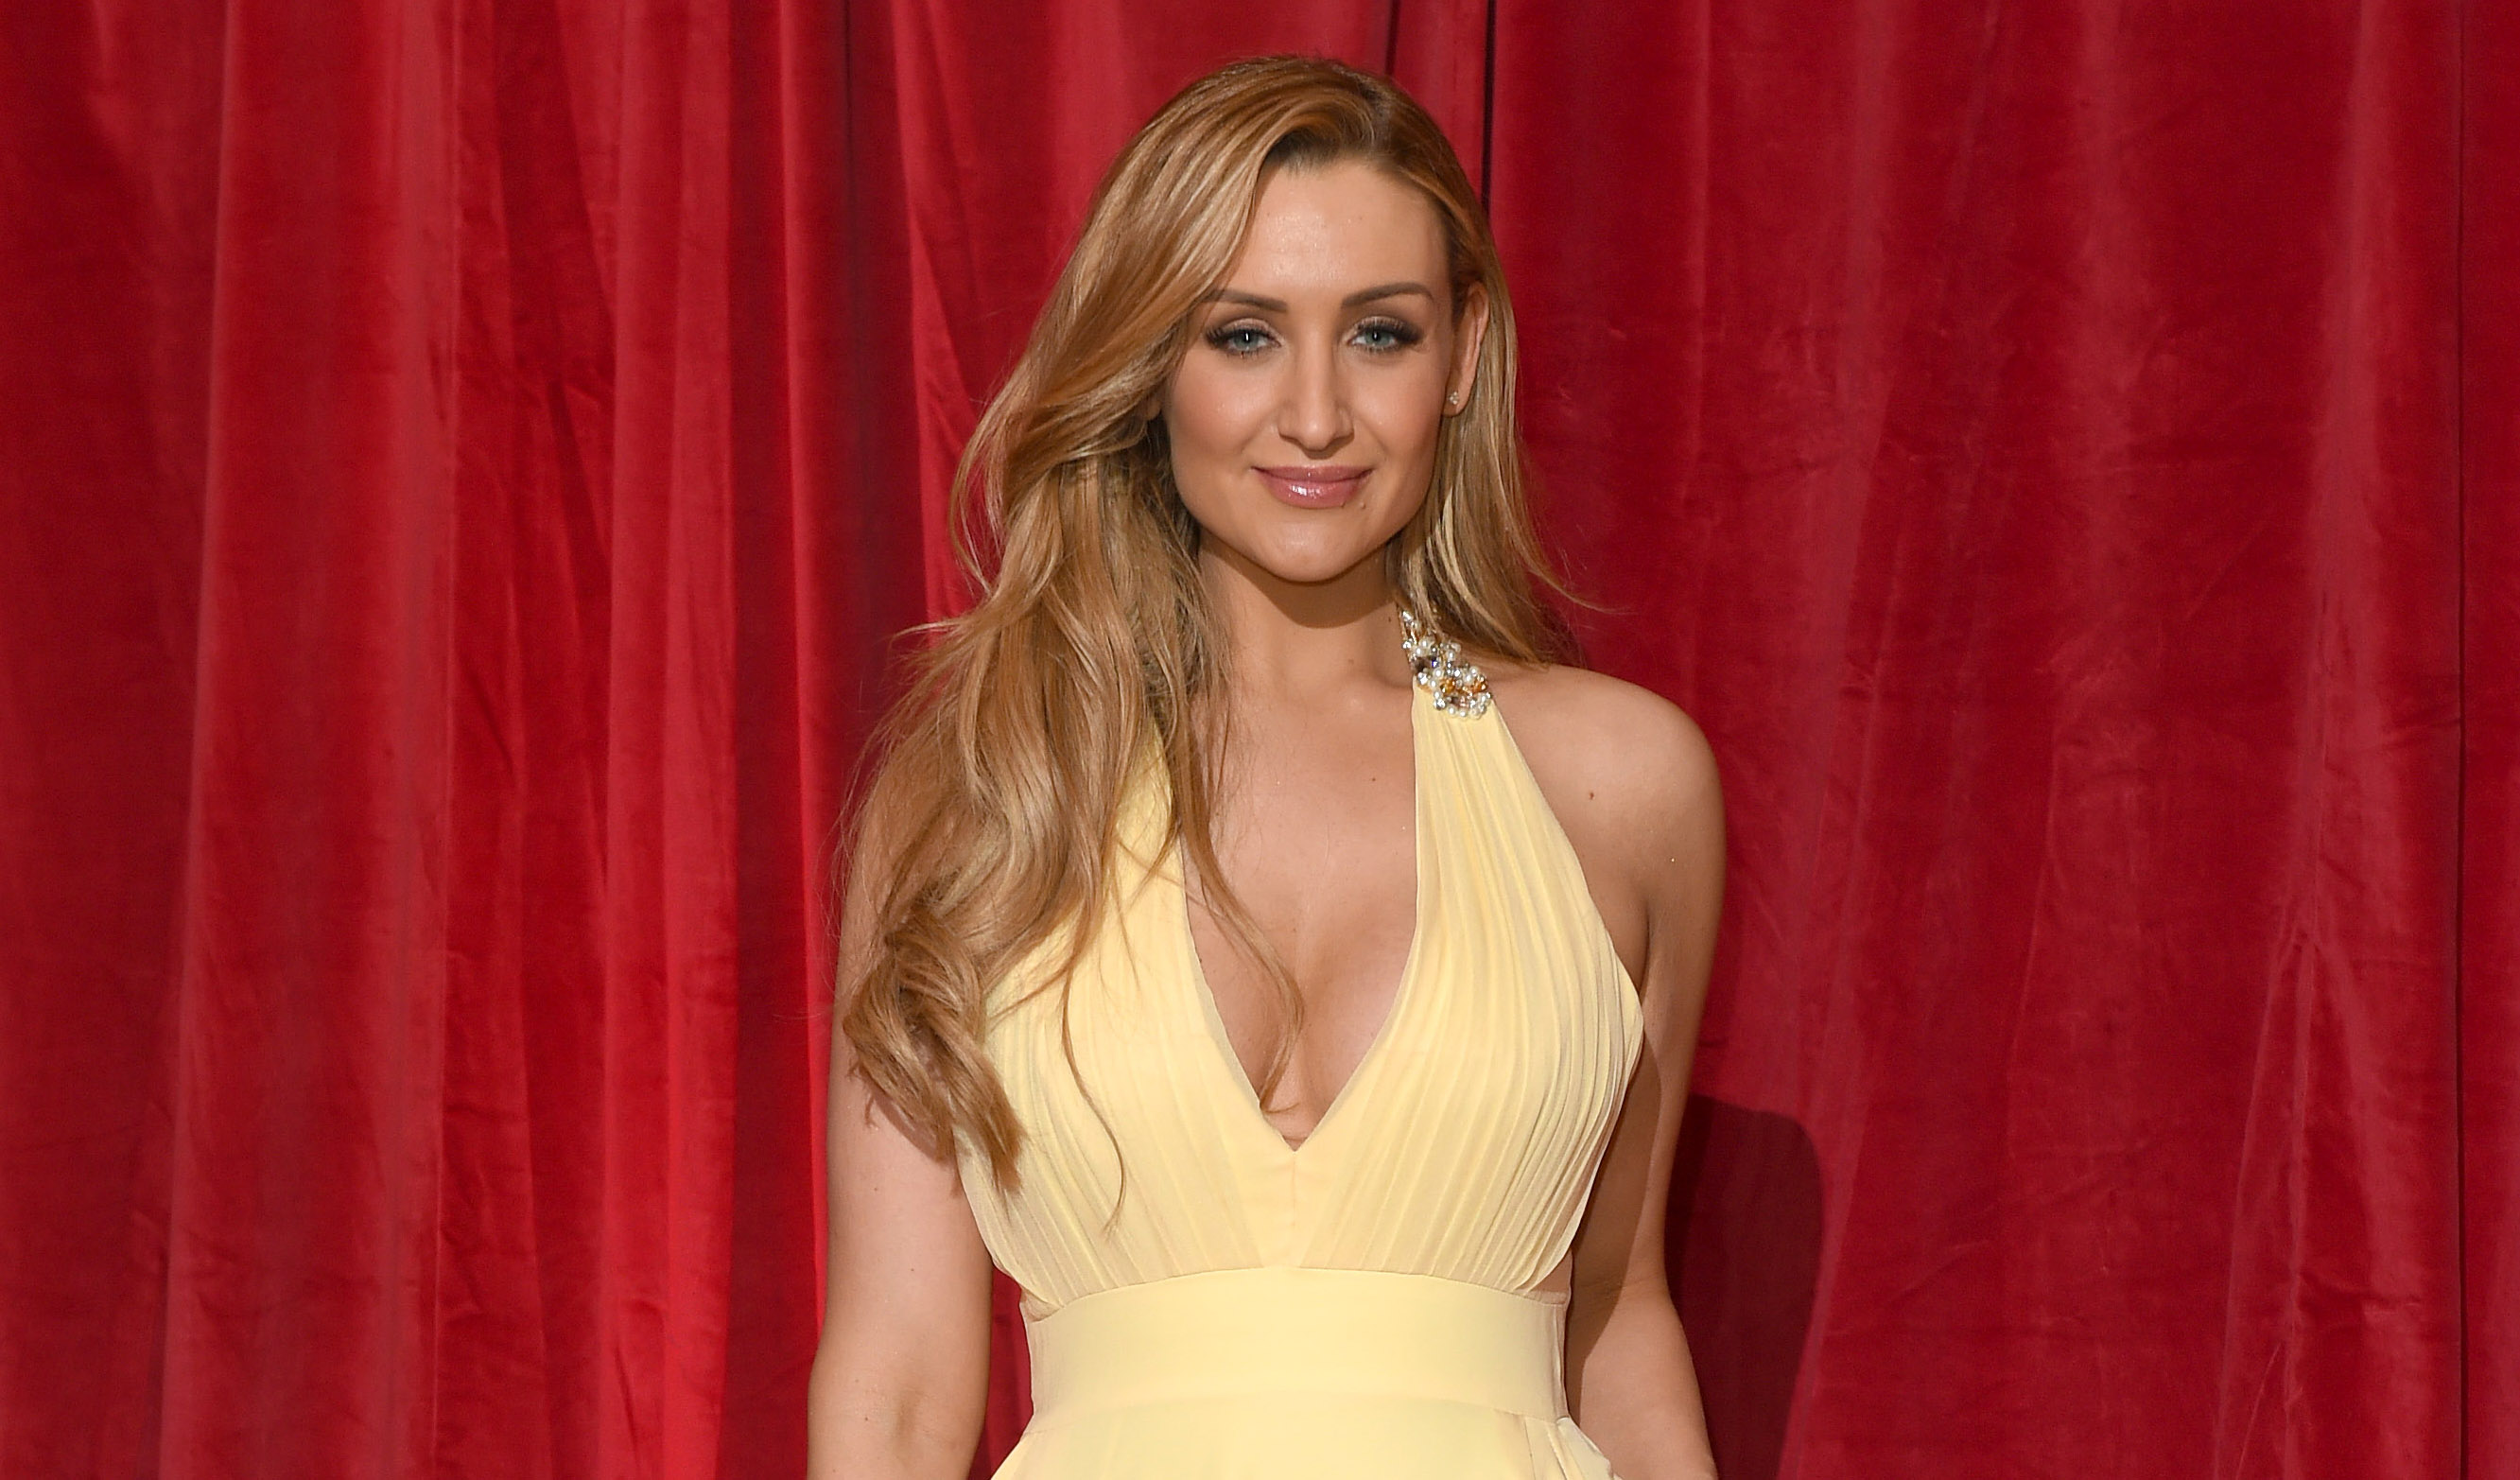 Catherine Tyldesley - Strictly Come Dancing rumours